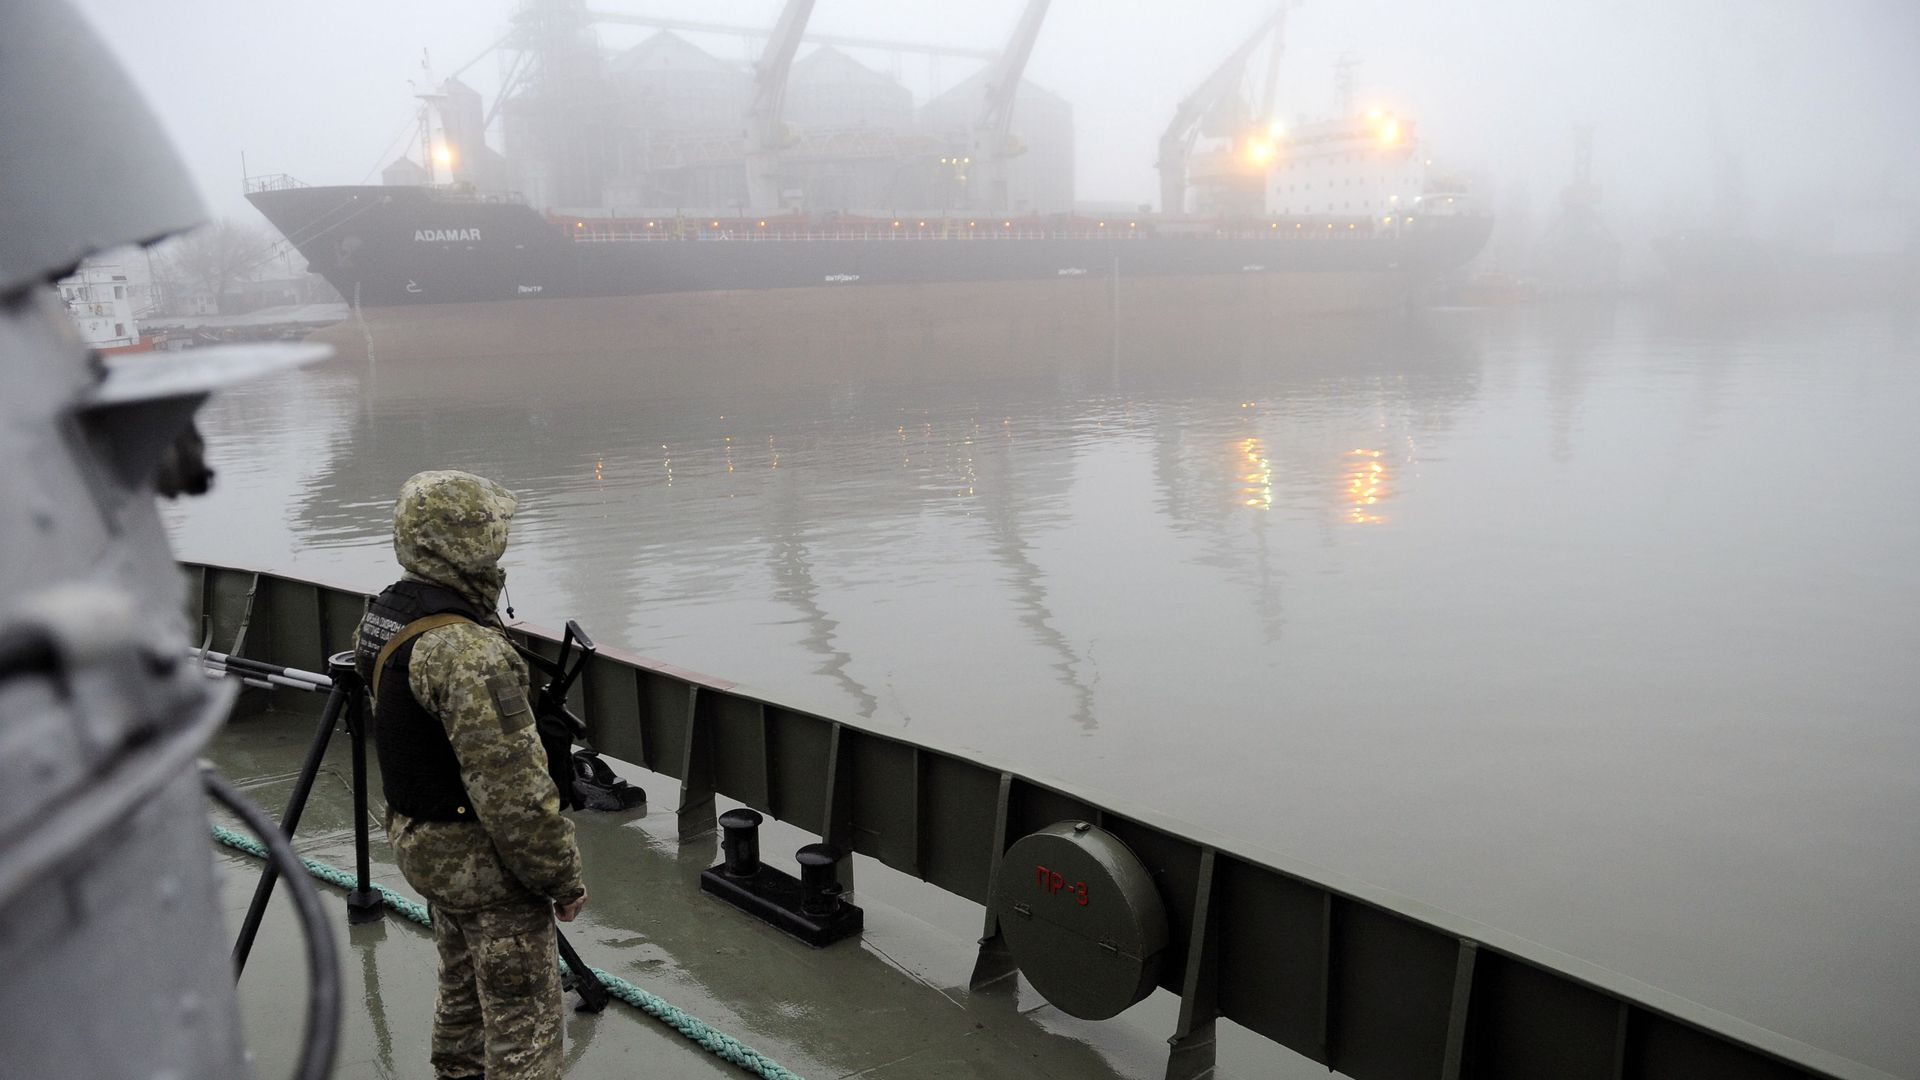 Ukrainian soldier stands guard aboard military boat called 'Dondass' moored in Mariupol, Sea of Azov port on November 27, 2018.